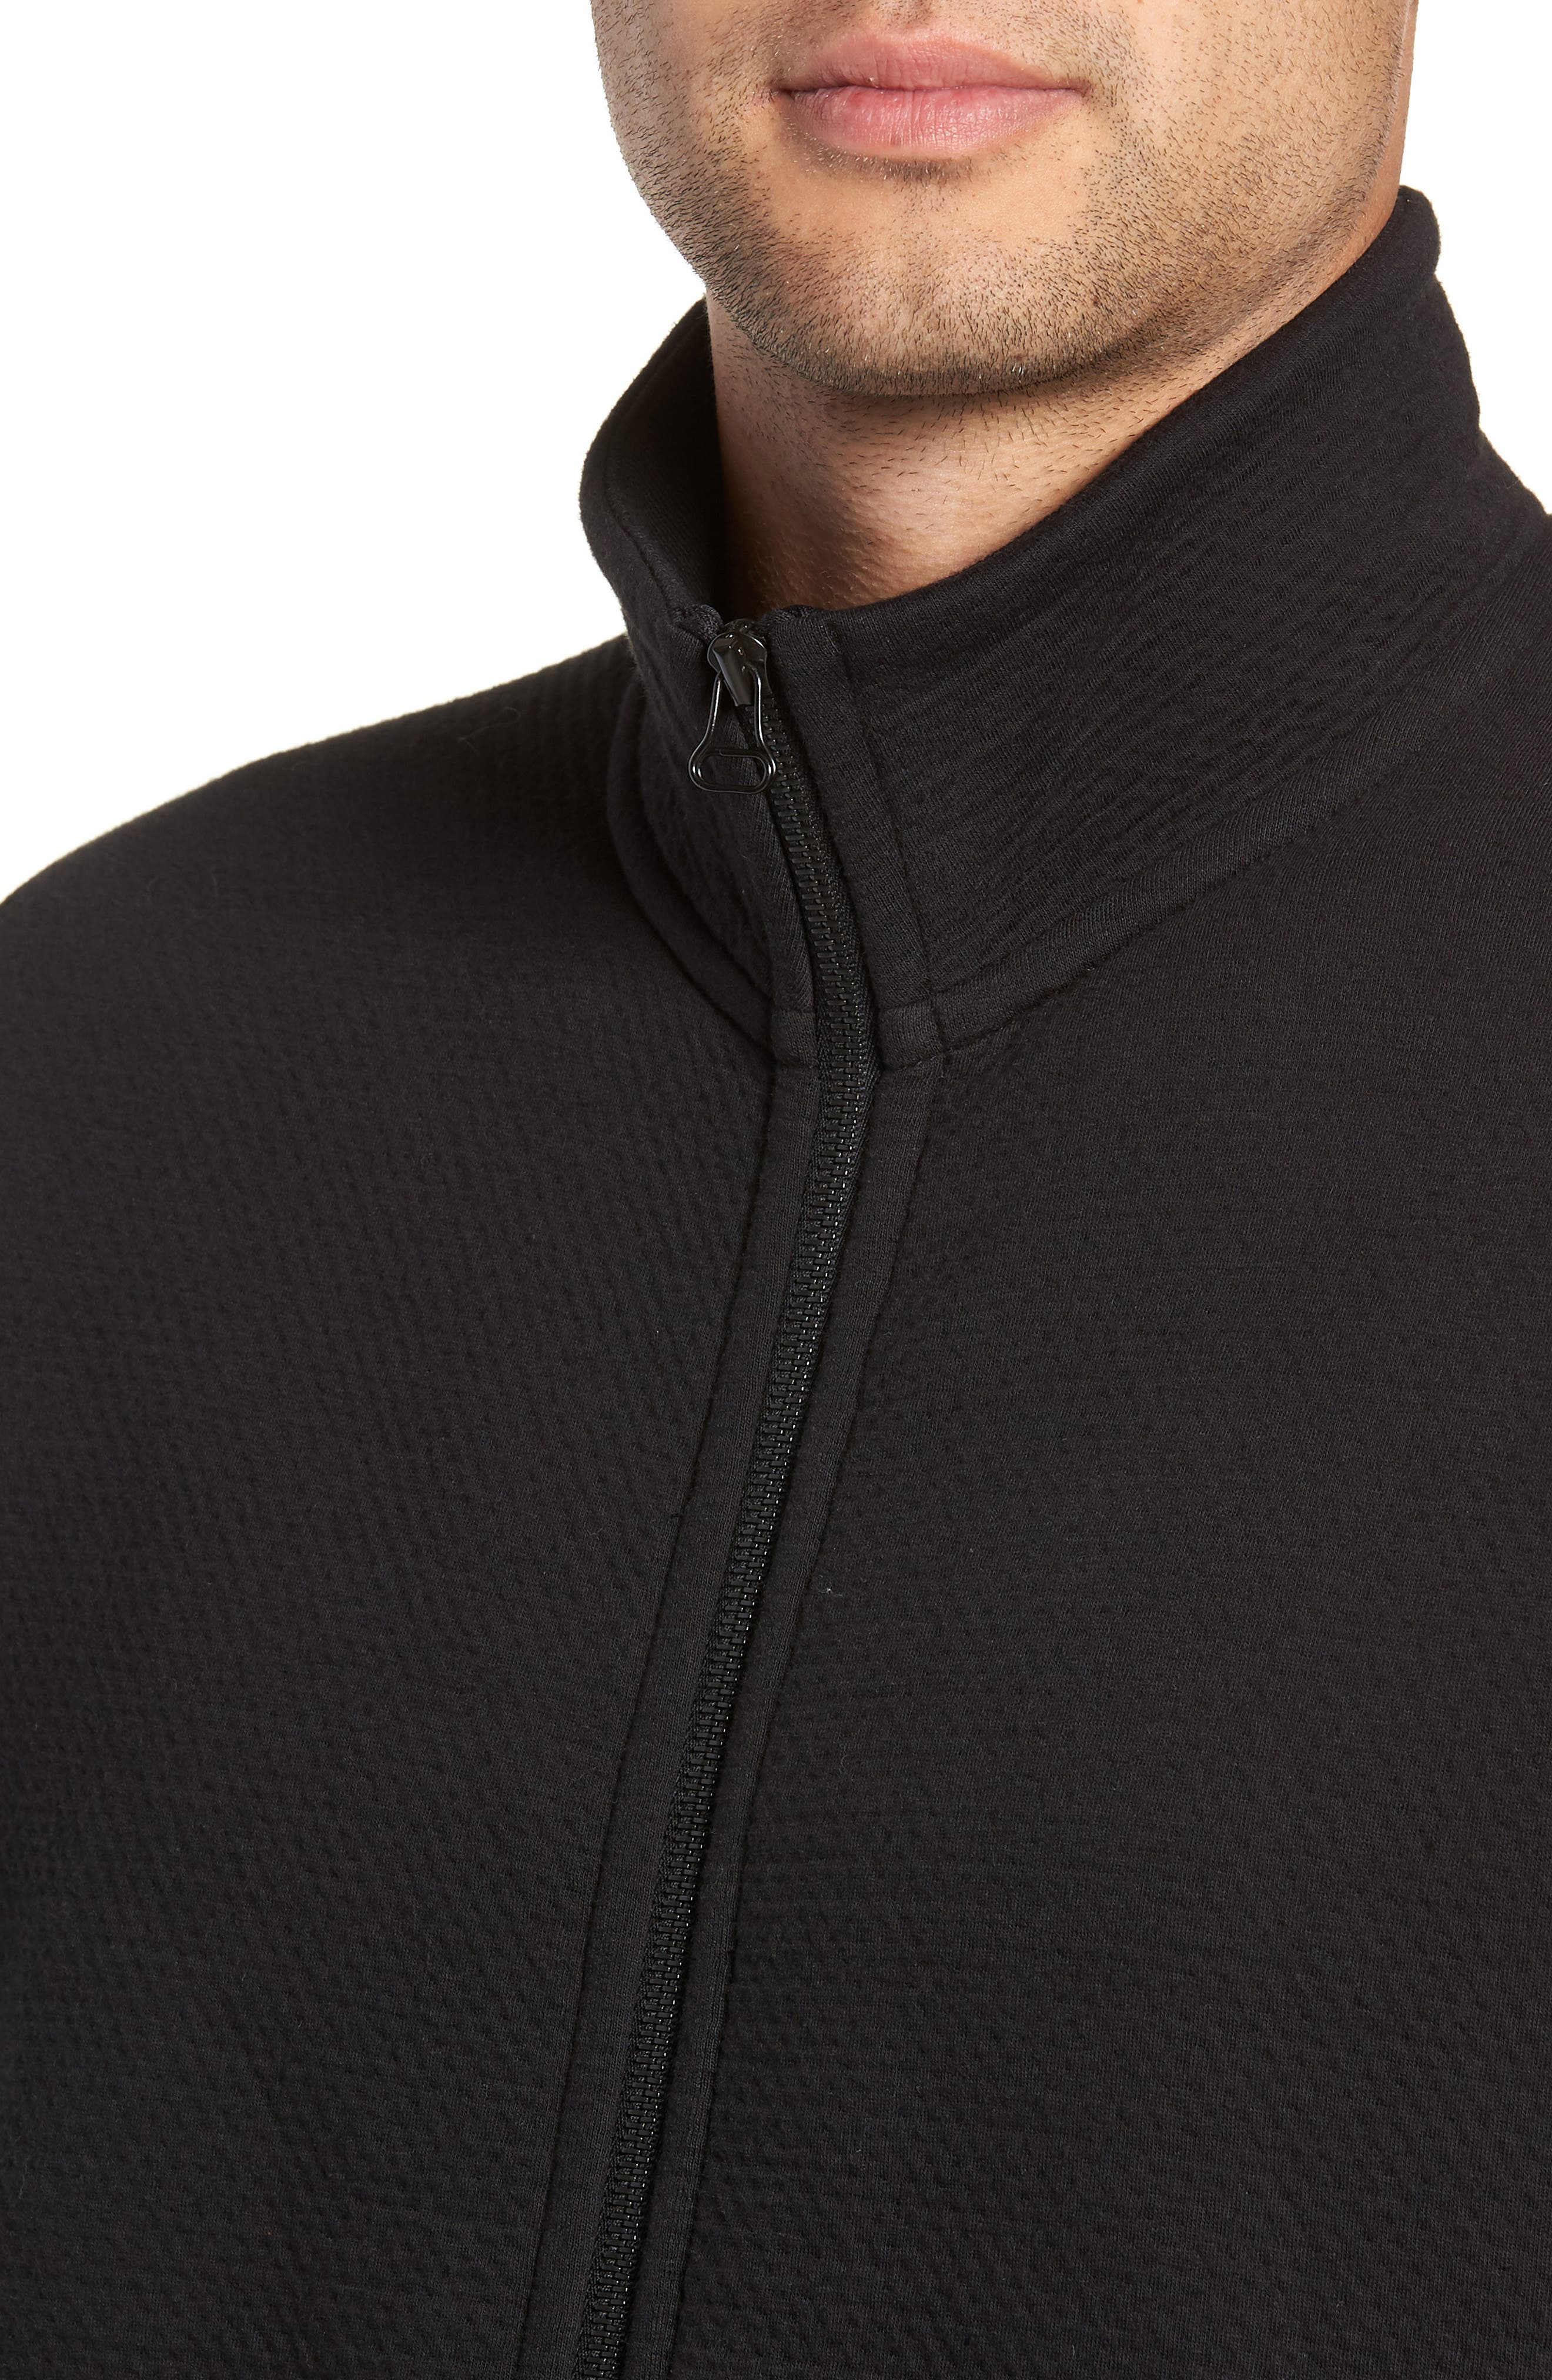 Cabin Fleece Jacket,                             Alternate thumbnail 4, color,                             BLACK